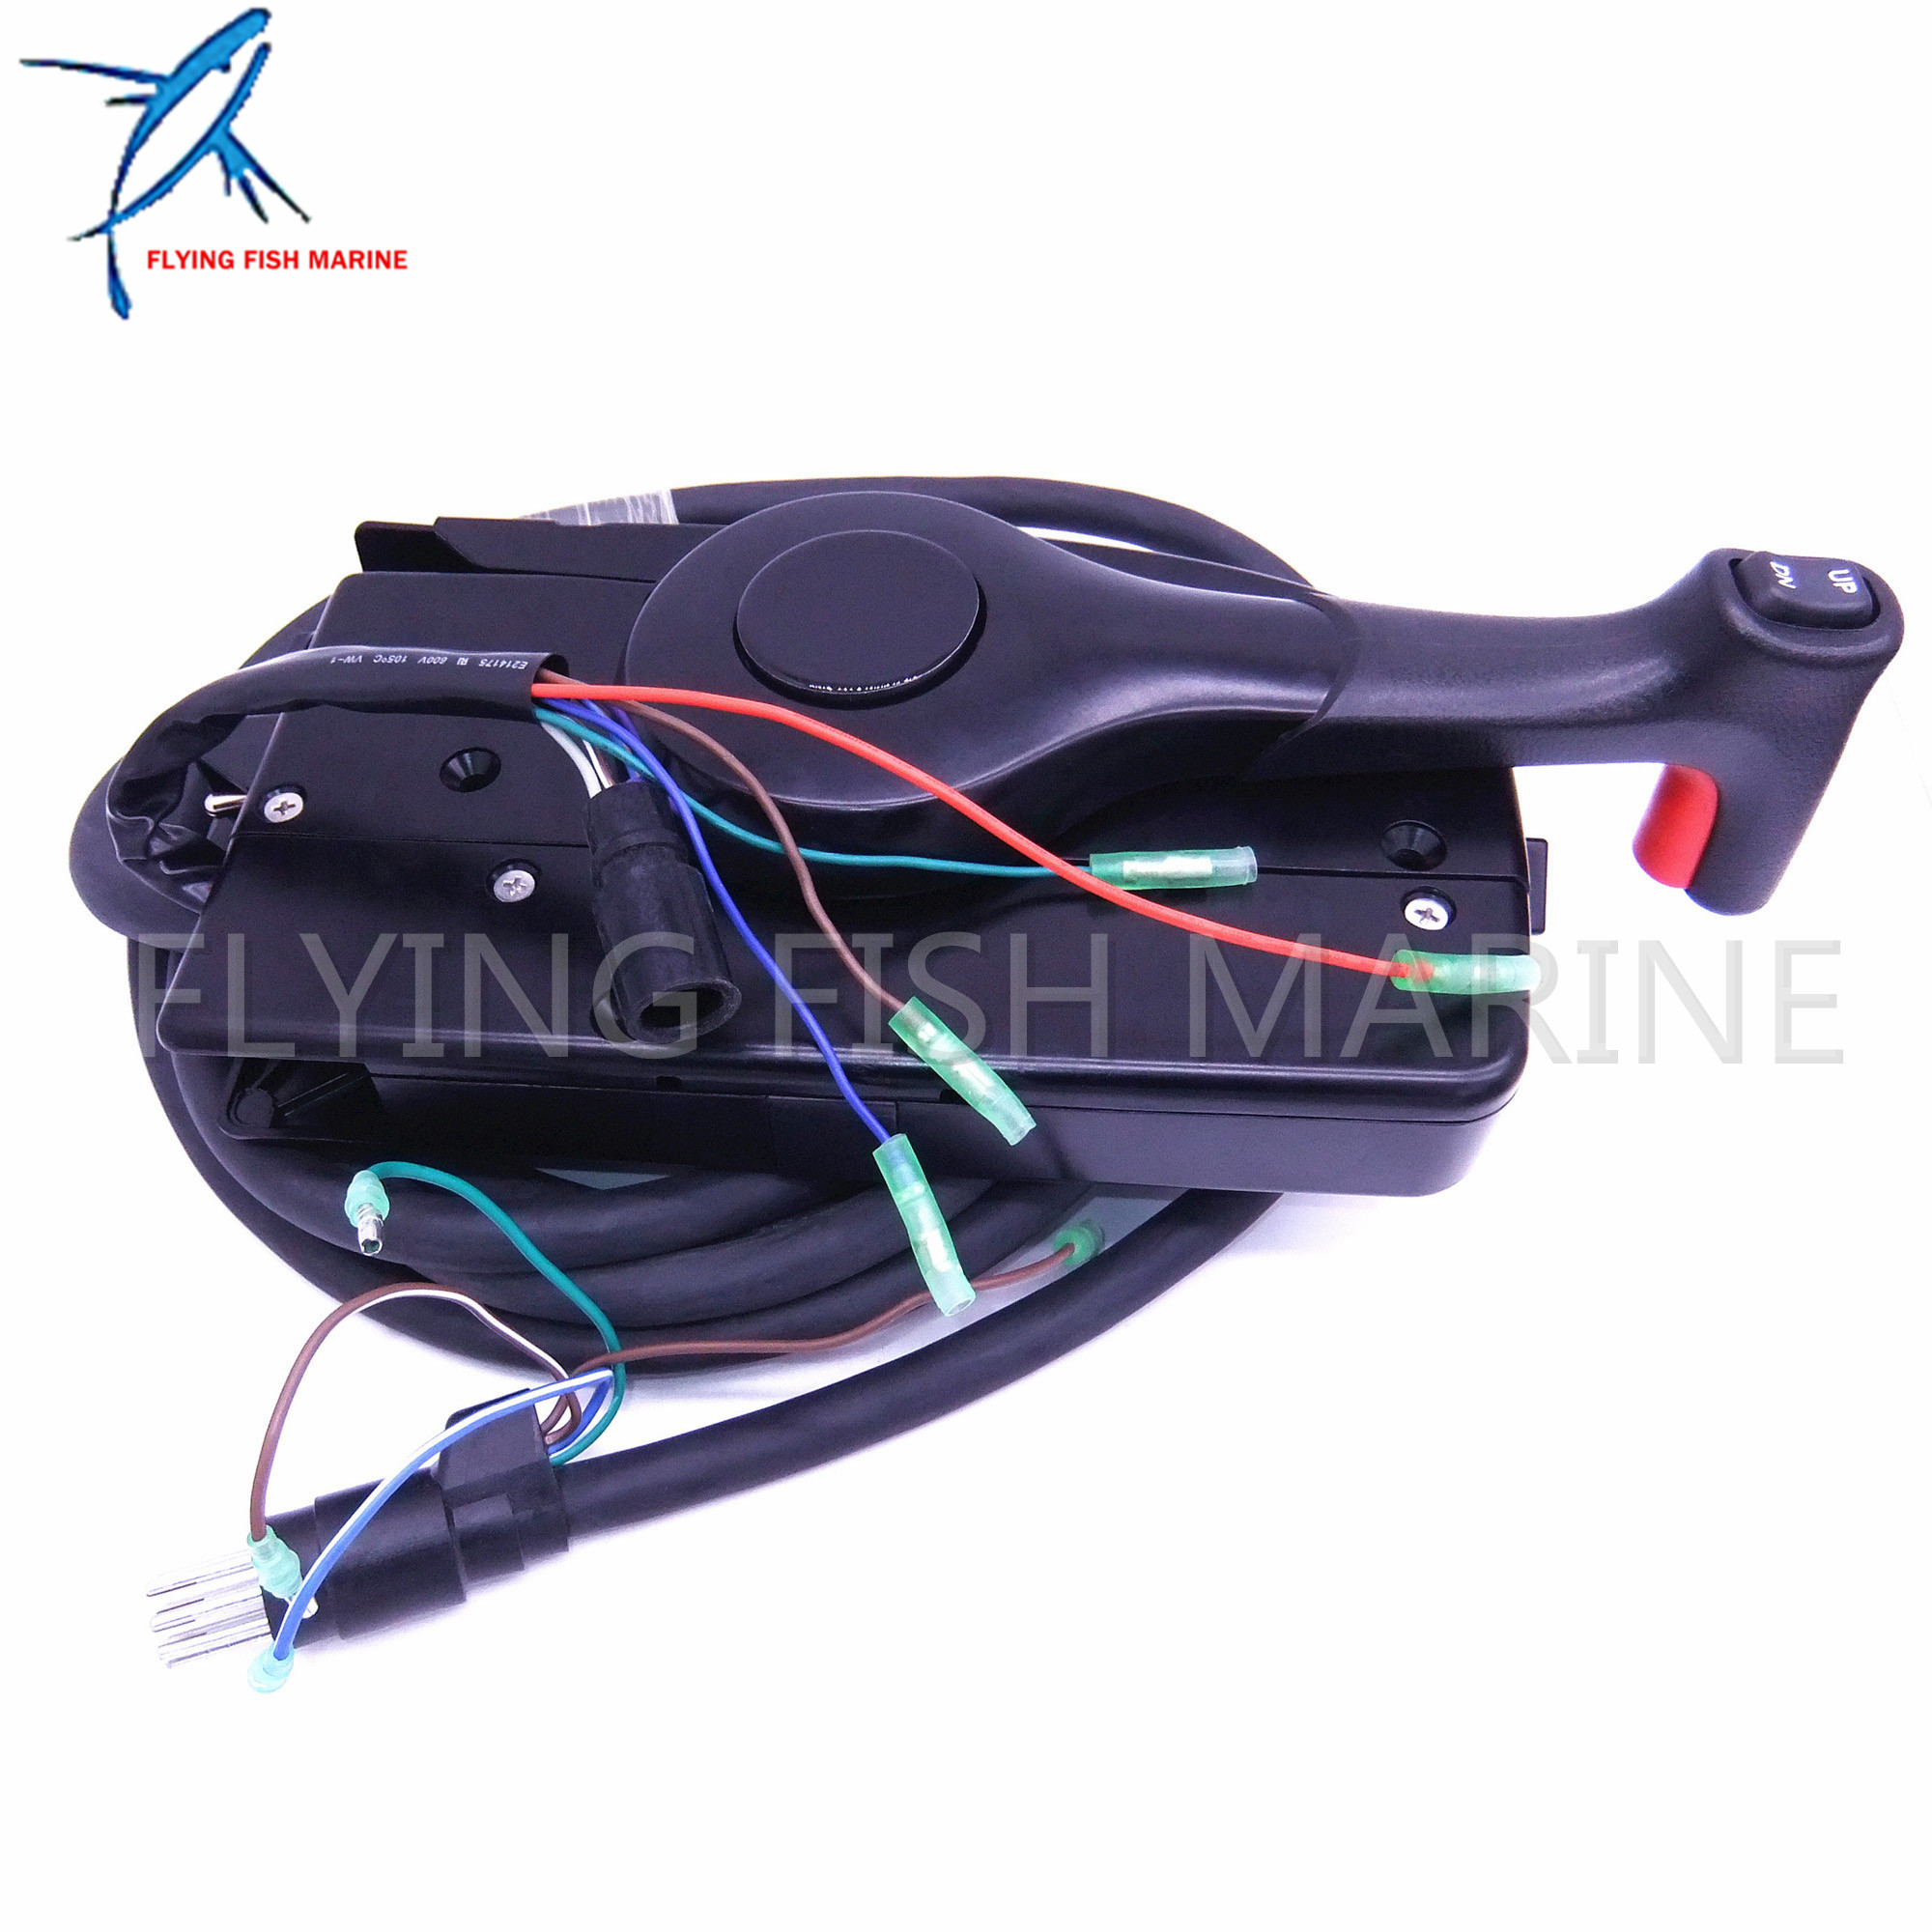 14-Pin Right Side Mercury Outboard Engine Mount Remote Control Box W//5m Harness